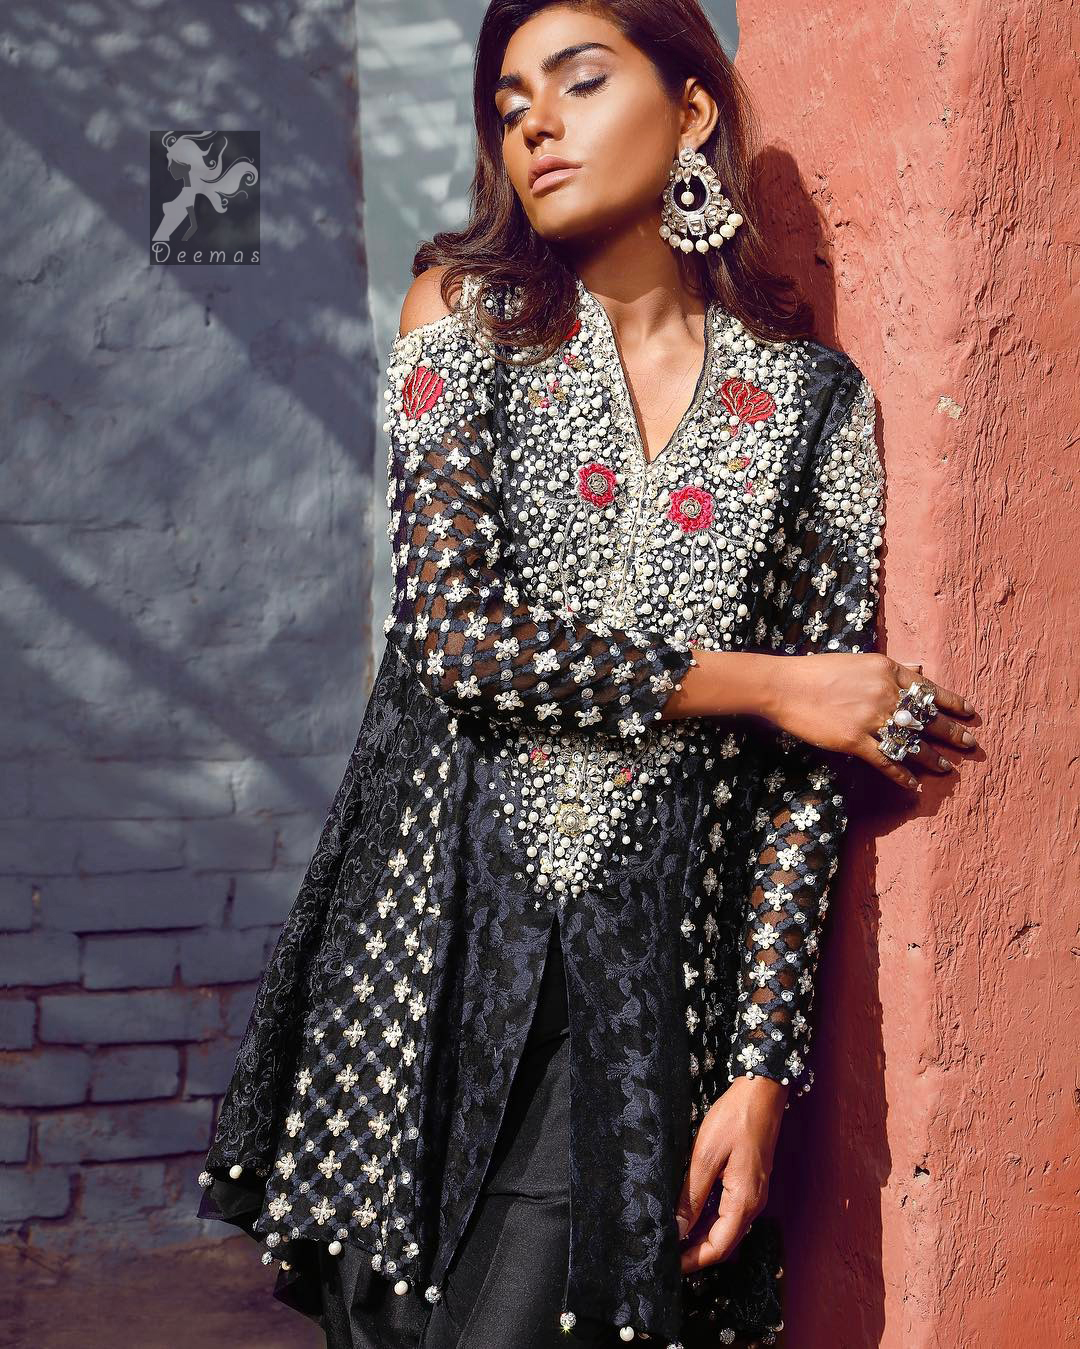 Black peplum made with pure banarsi jamawar chiffon. Peplum having multiple panels of different banarsi patterns. White and silver embellishment on neckline, side panels and sleeves. Pure raw silk sharara pants.